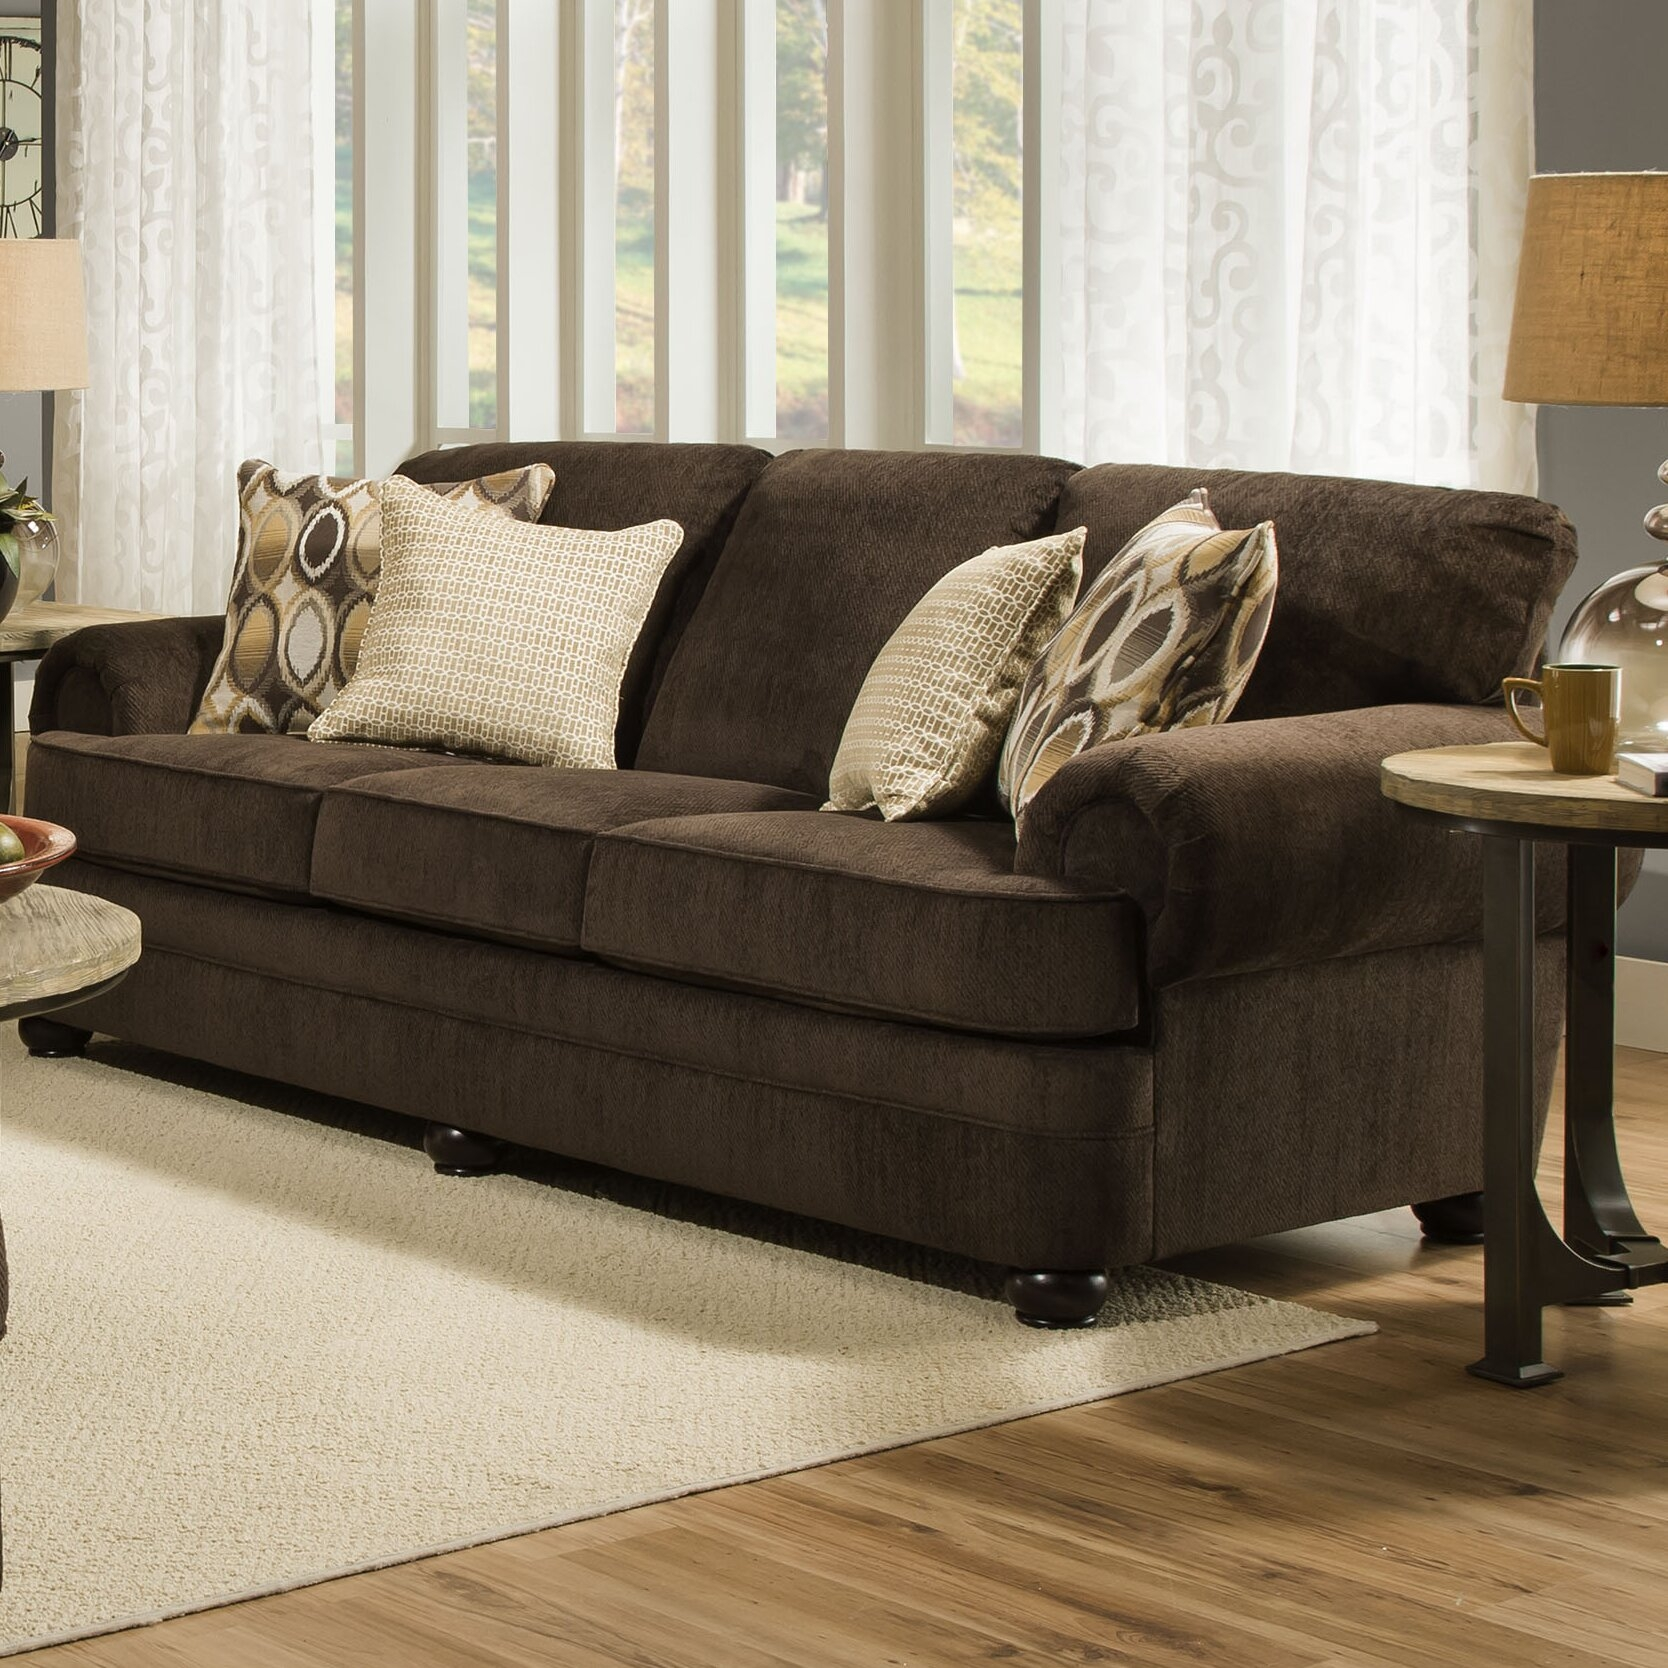 Merveilleux Danville Sofa By Simmons Upholstery